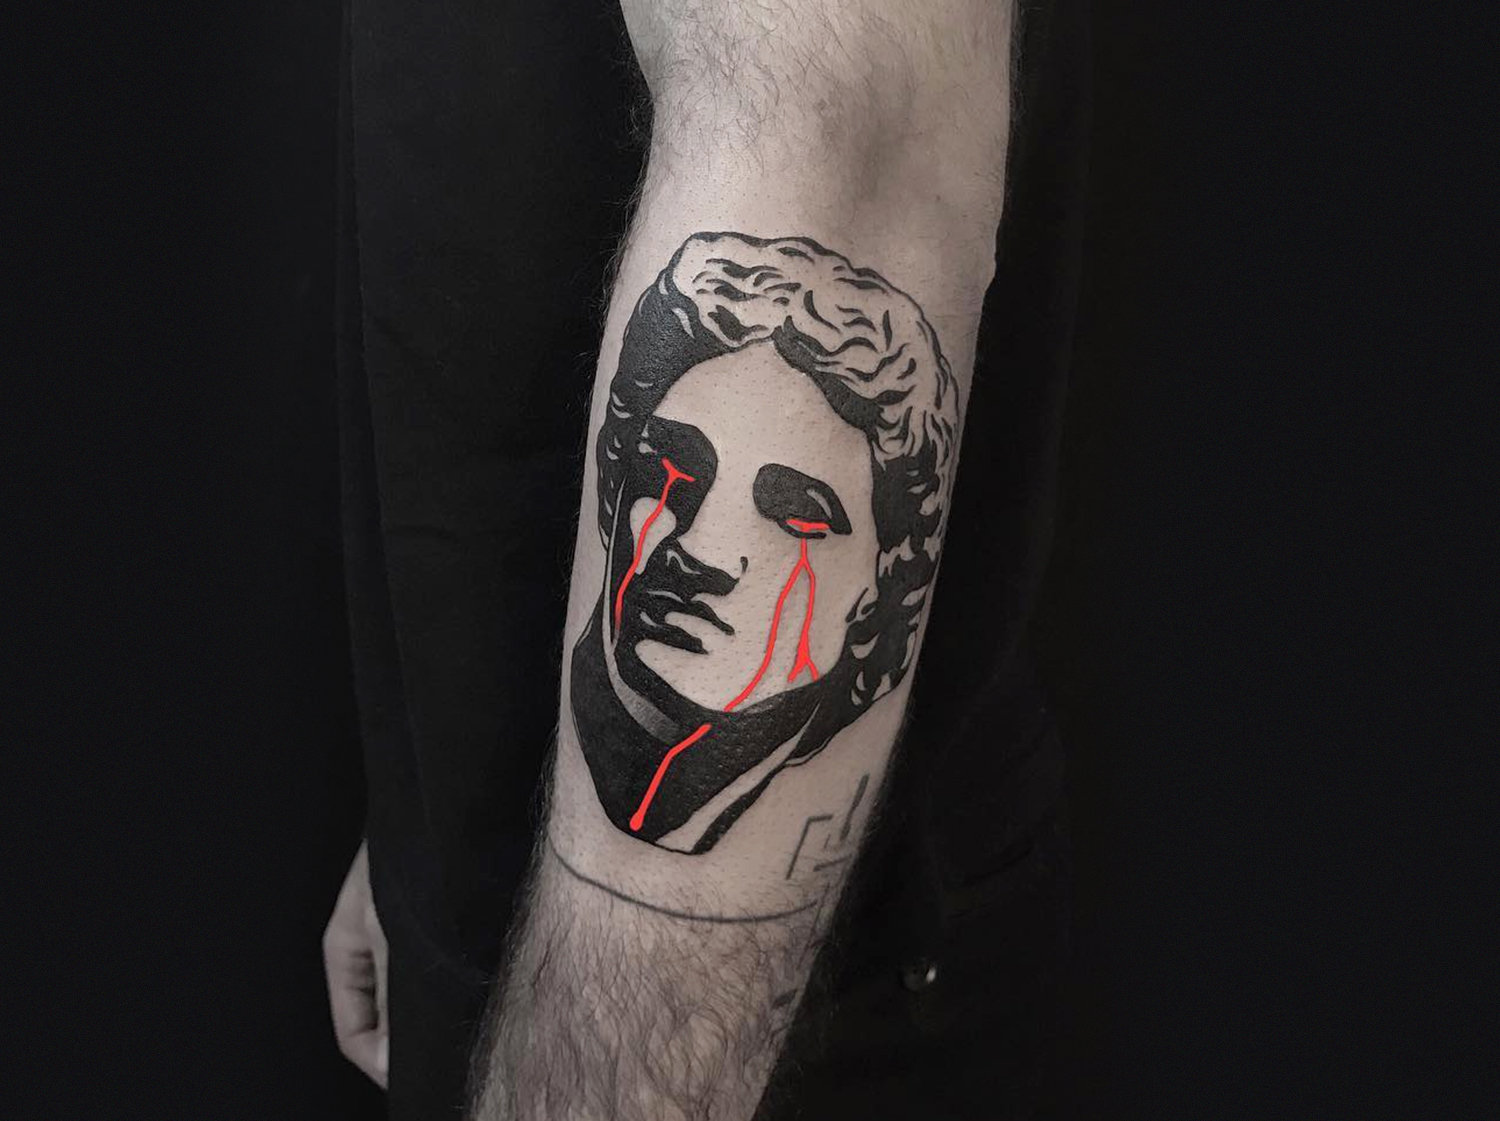 crying, classical sculpture tattoo